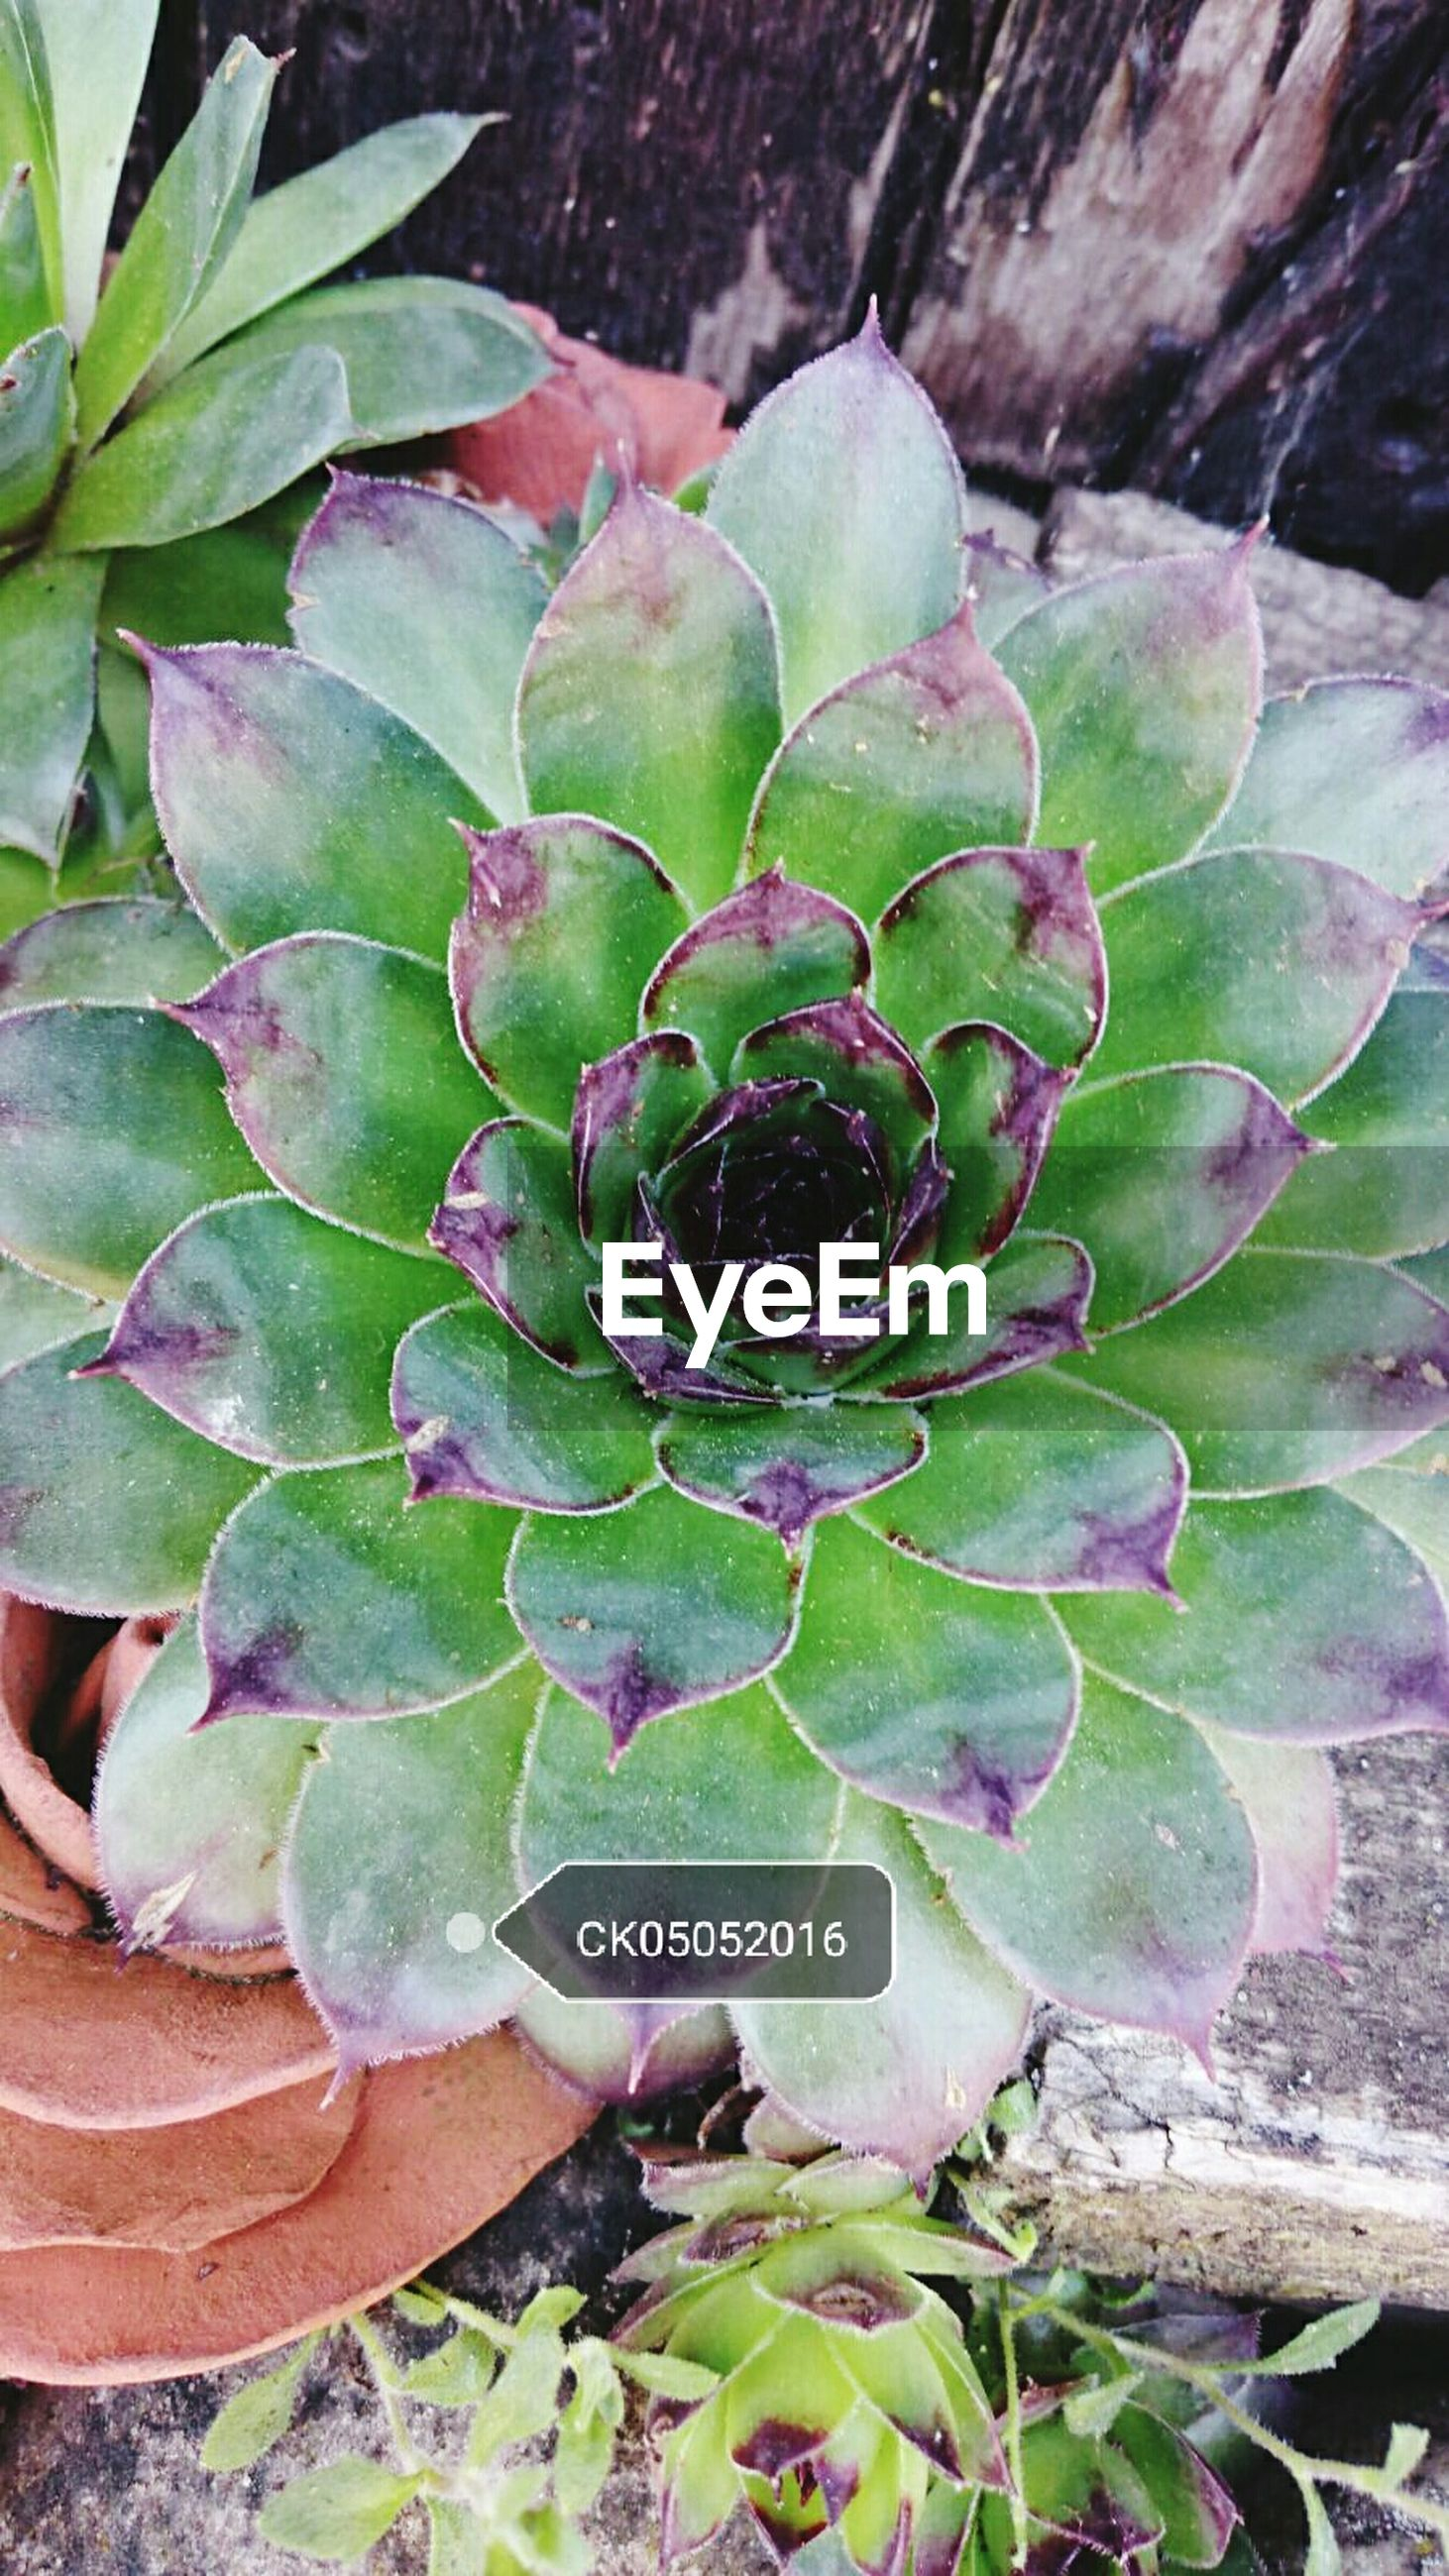 growth, leaf, plant, green color, nature, beauty in nature, close-up, freshness, flower, high angle view, fragility, cactus, natural pattern, outdoors, day, no people, green, succulent plant, focus on foreground, purple